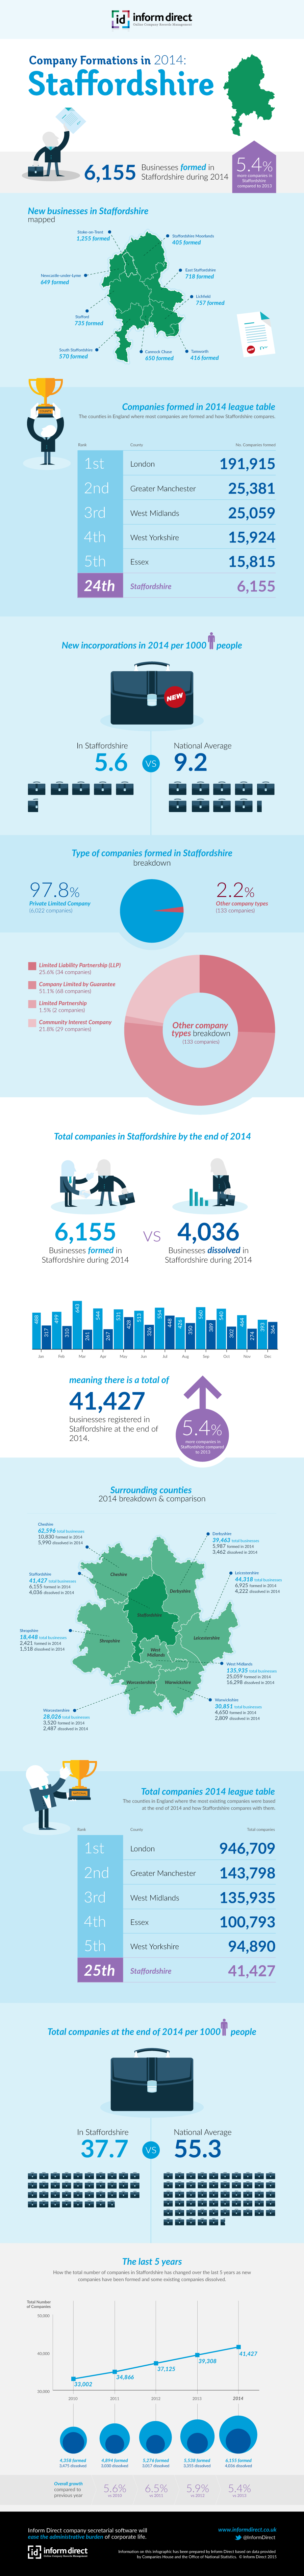 Inform Direct - Company Formations in Staffordshire 2014 Infographic